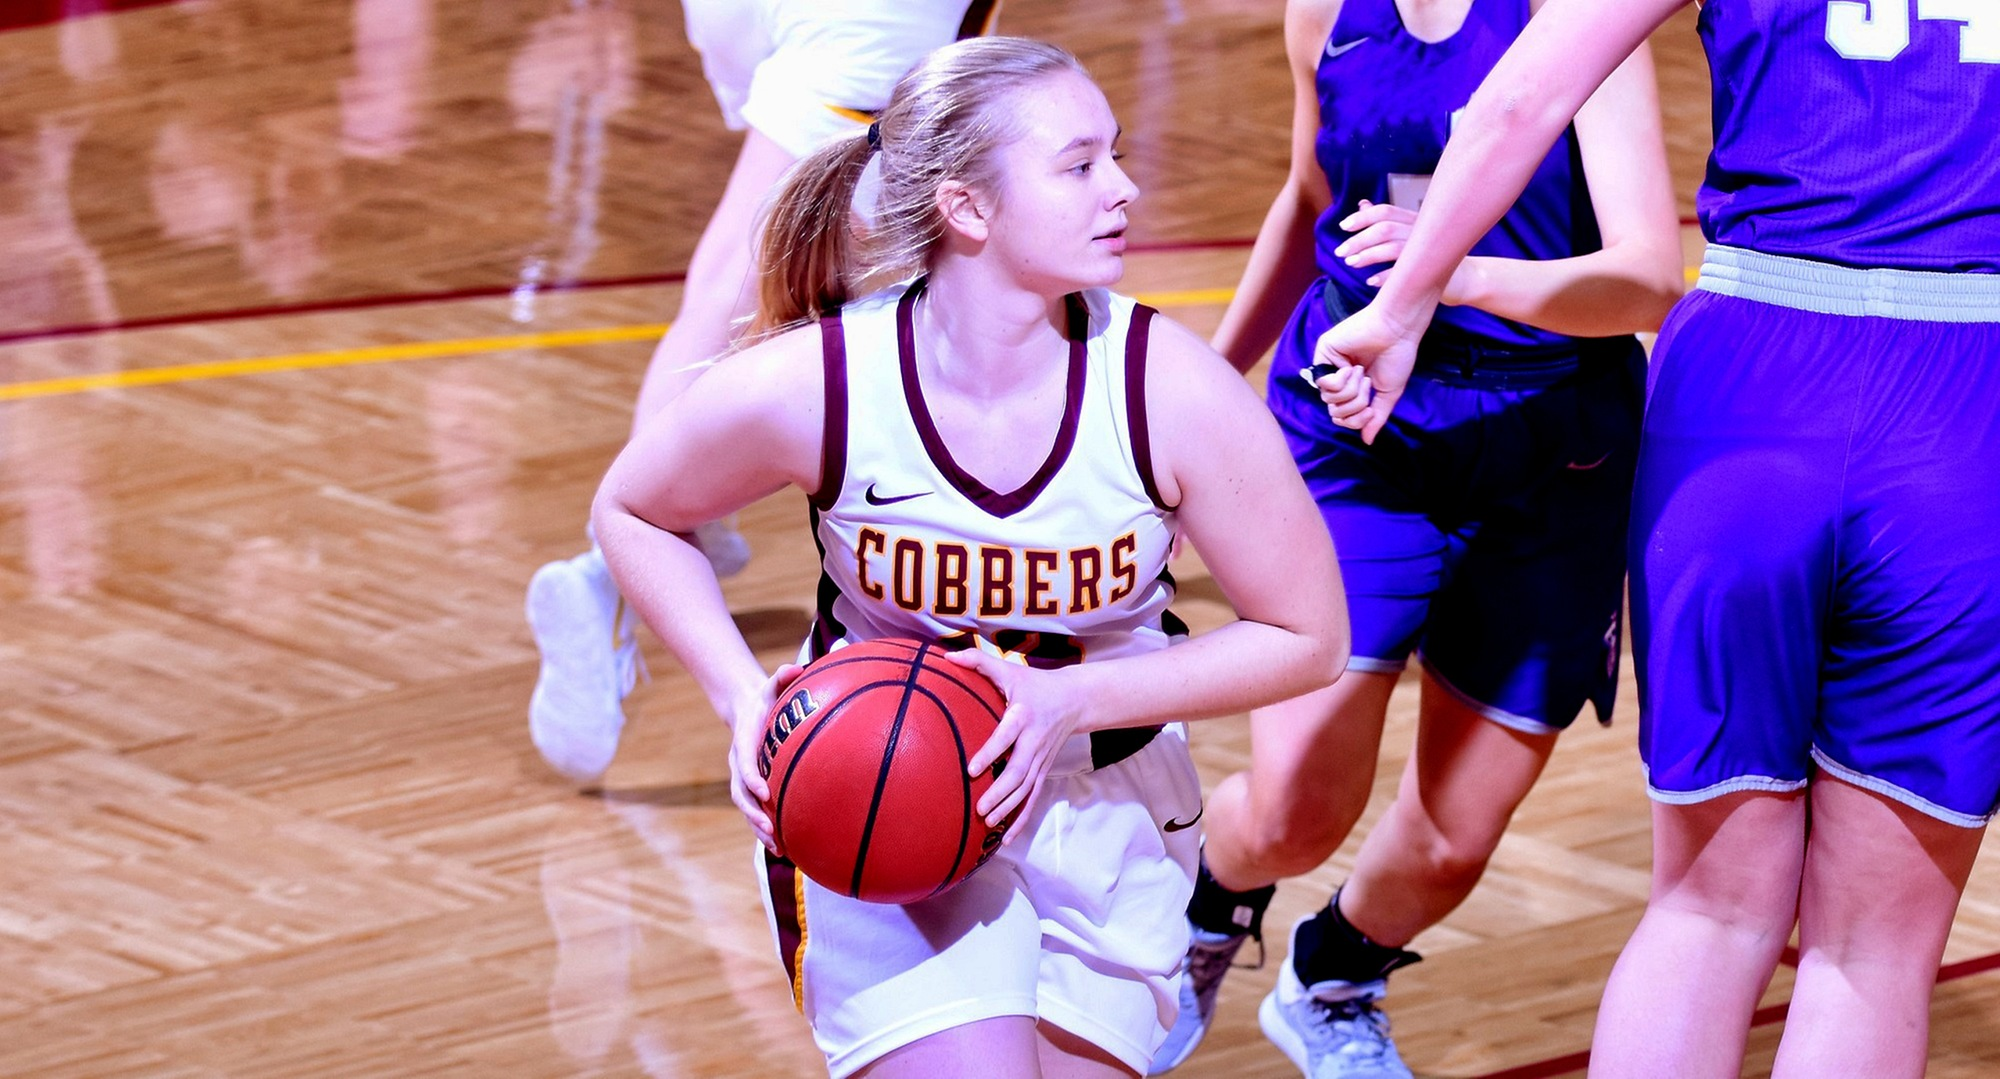 Sophomore Bailee Larson recorded the first double-double of her career as she scored 11 points and grabbed 10 rebounds to help Concordia beat Macalester.